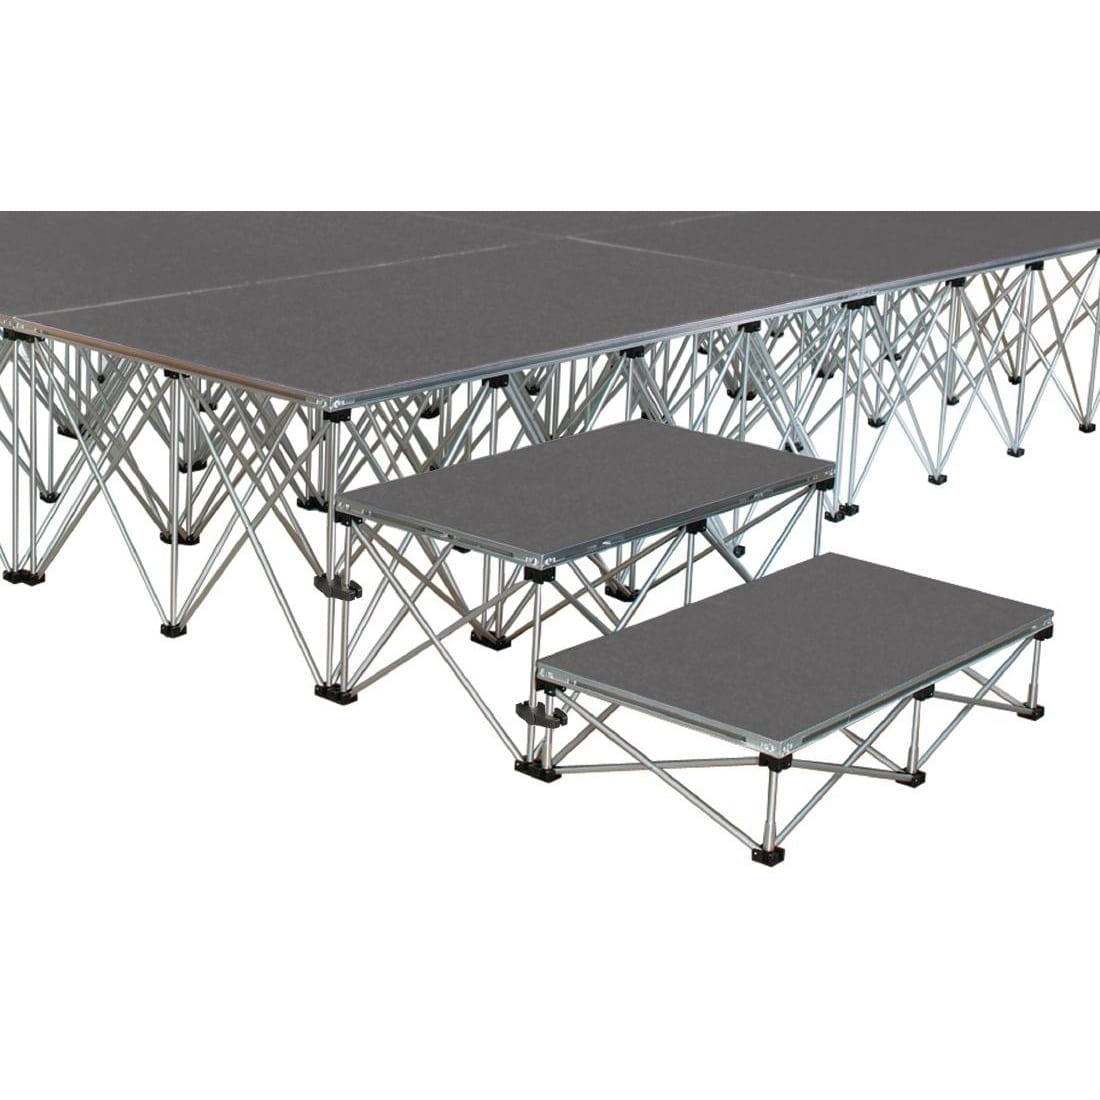 Ultralight Staging with Grey Flooring Package C (Direct)-0